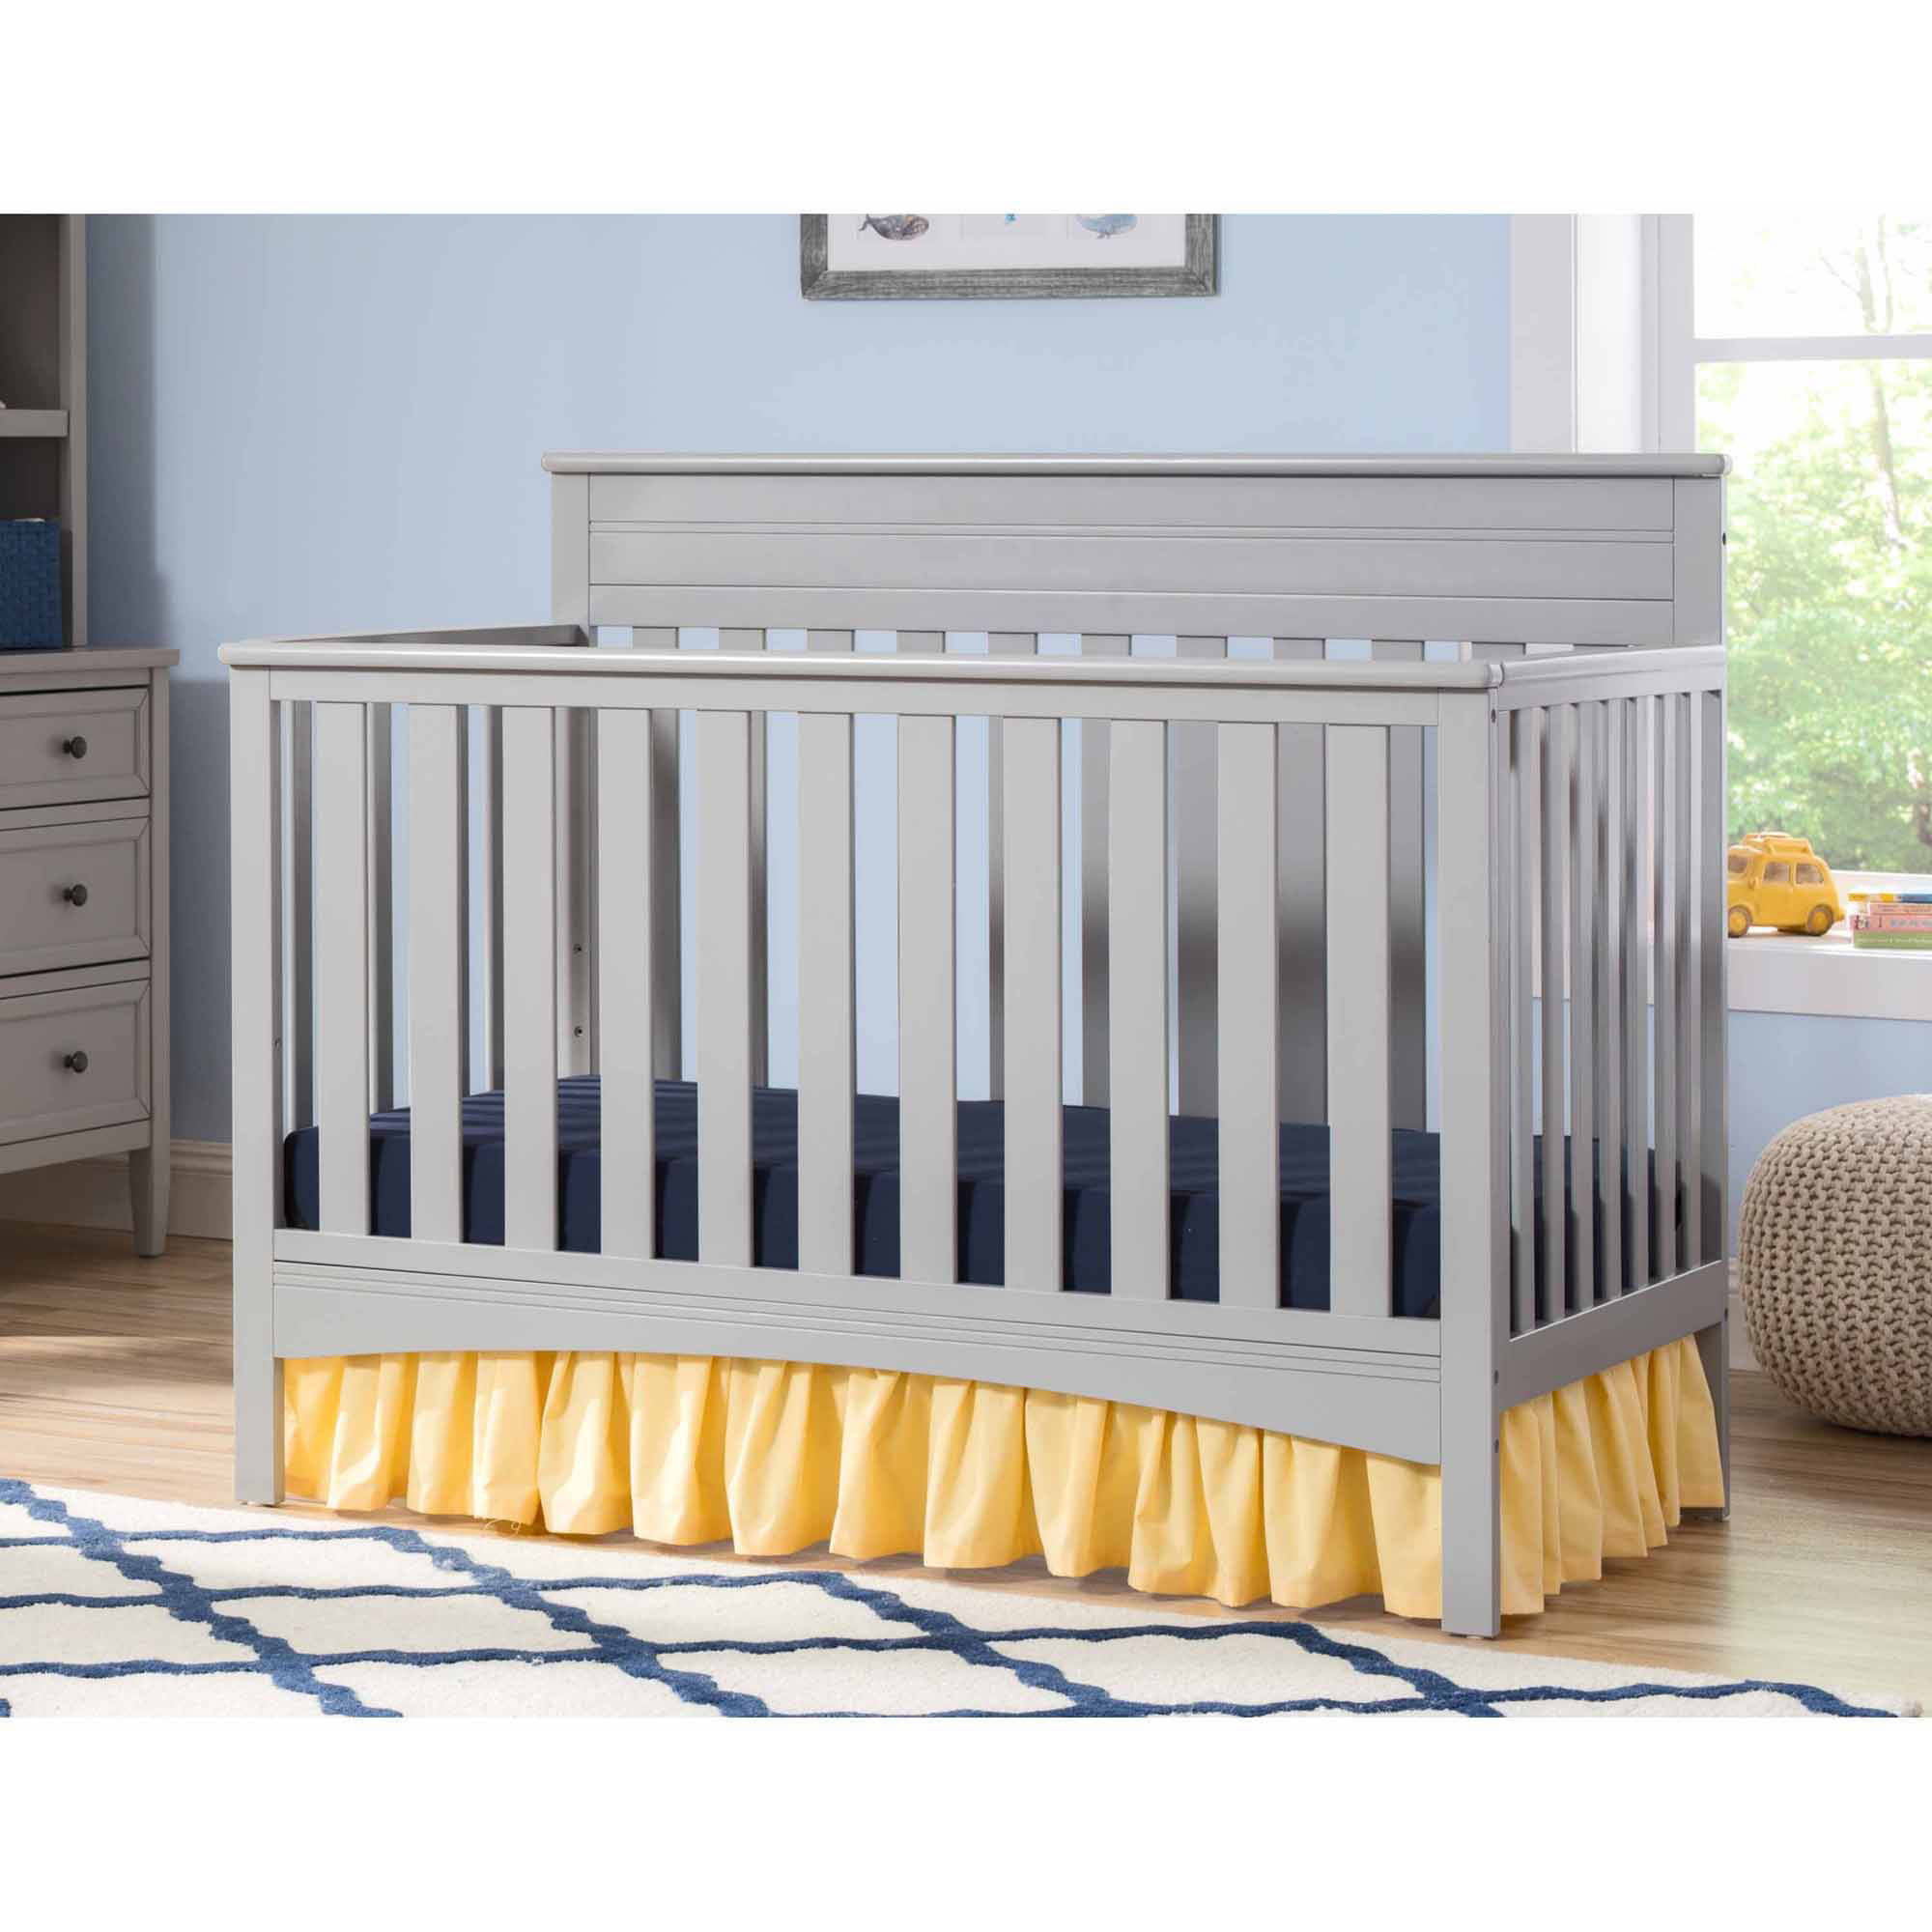 Delta Children Fabio 4-in-1 Crib, (Choose Your Finish)